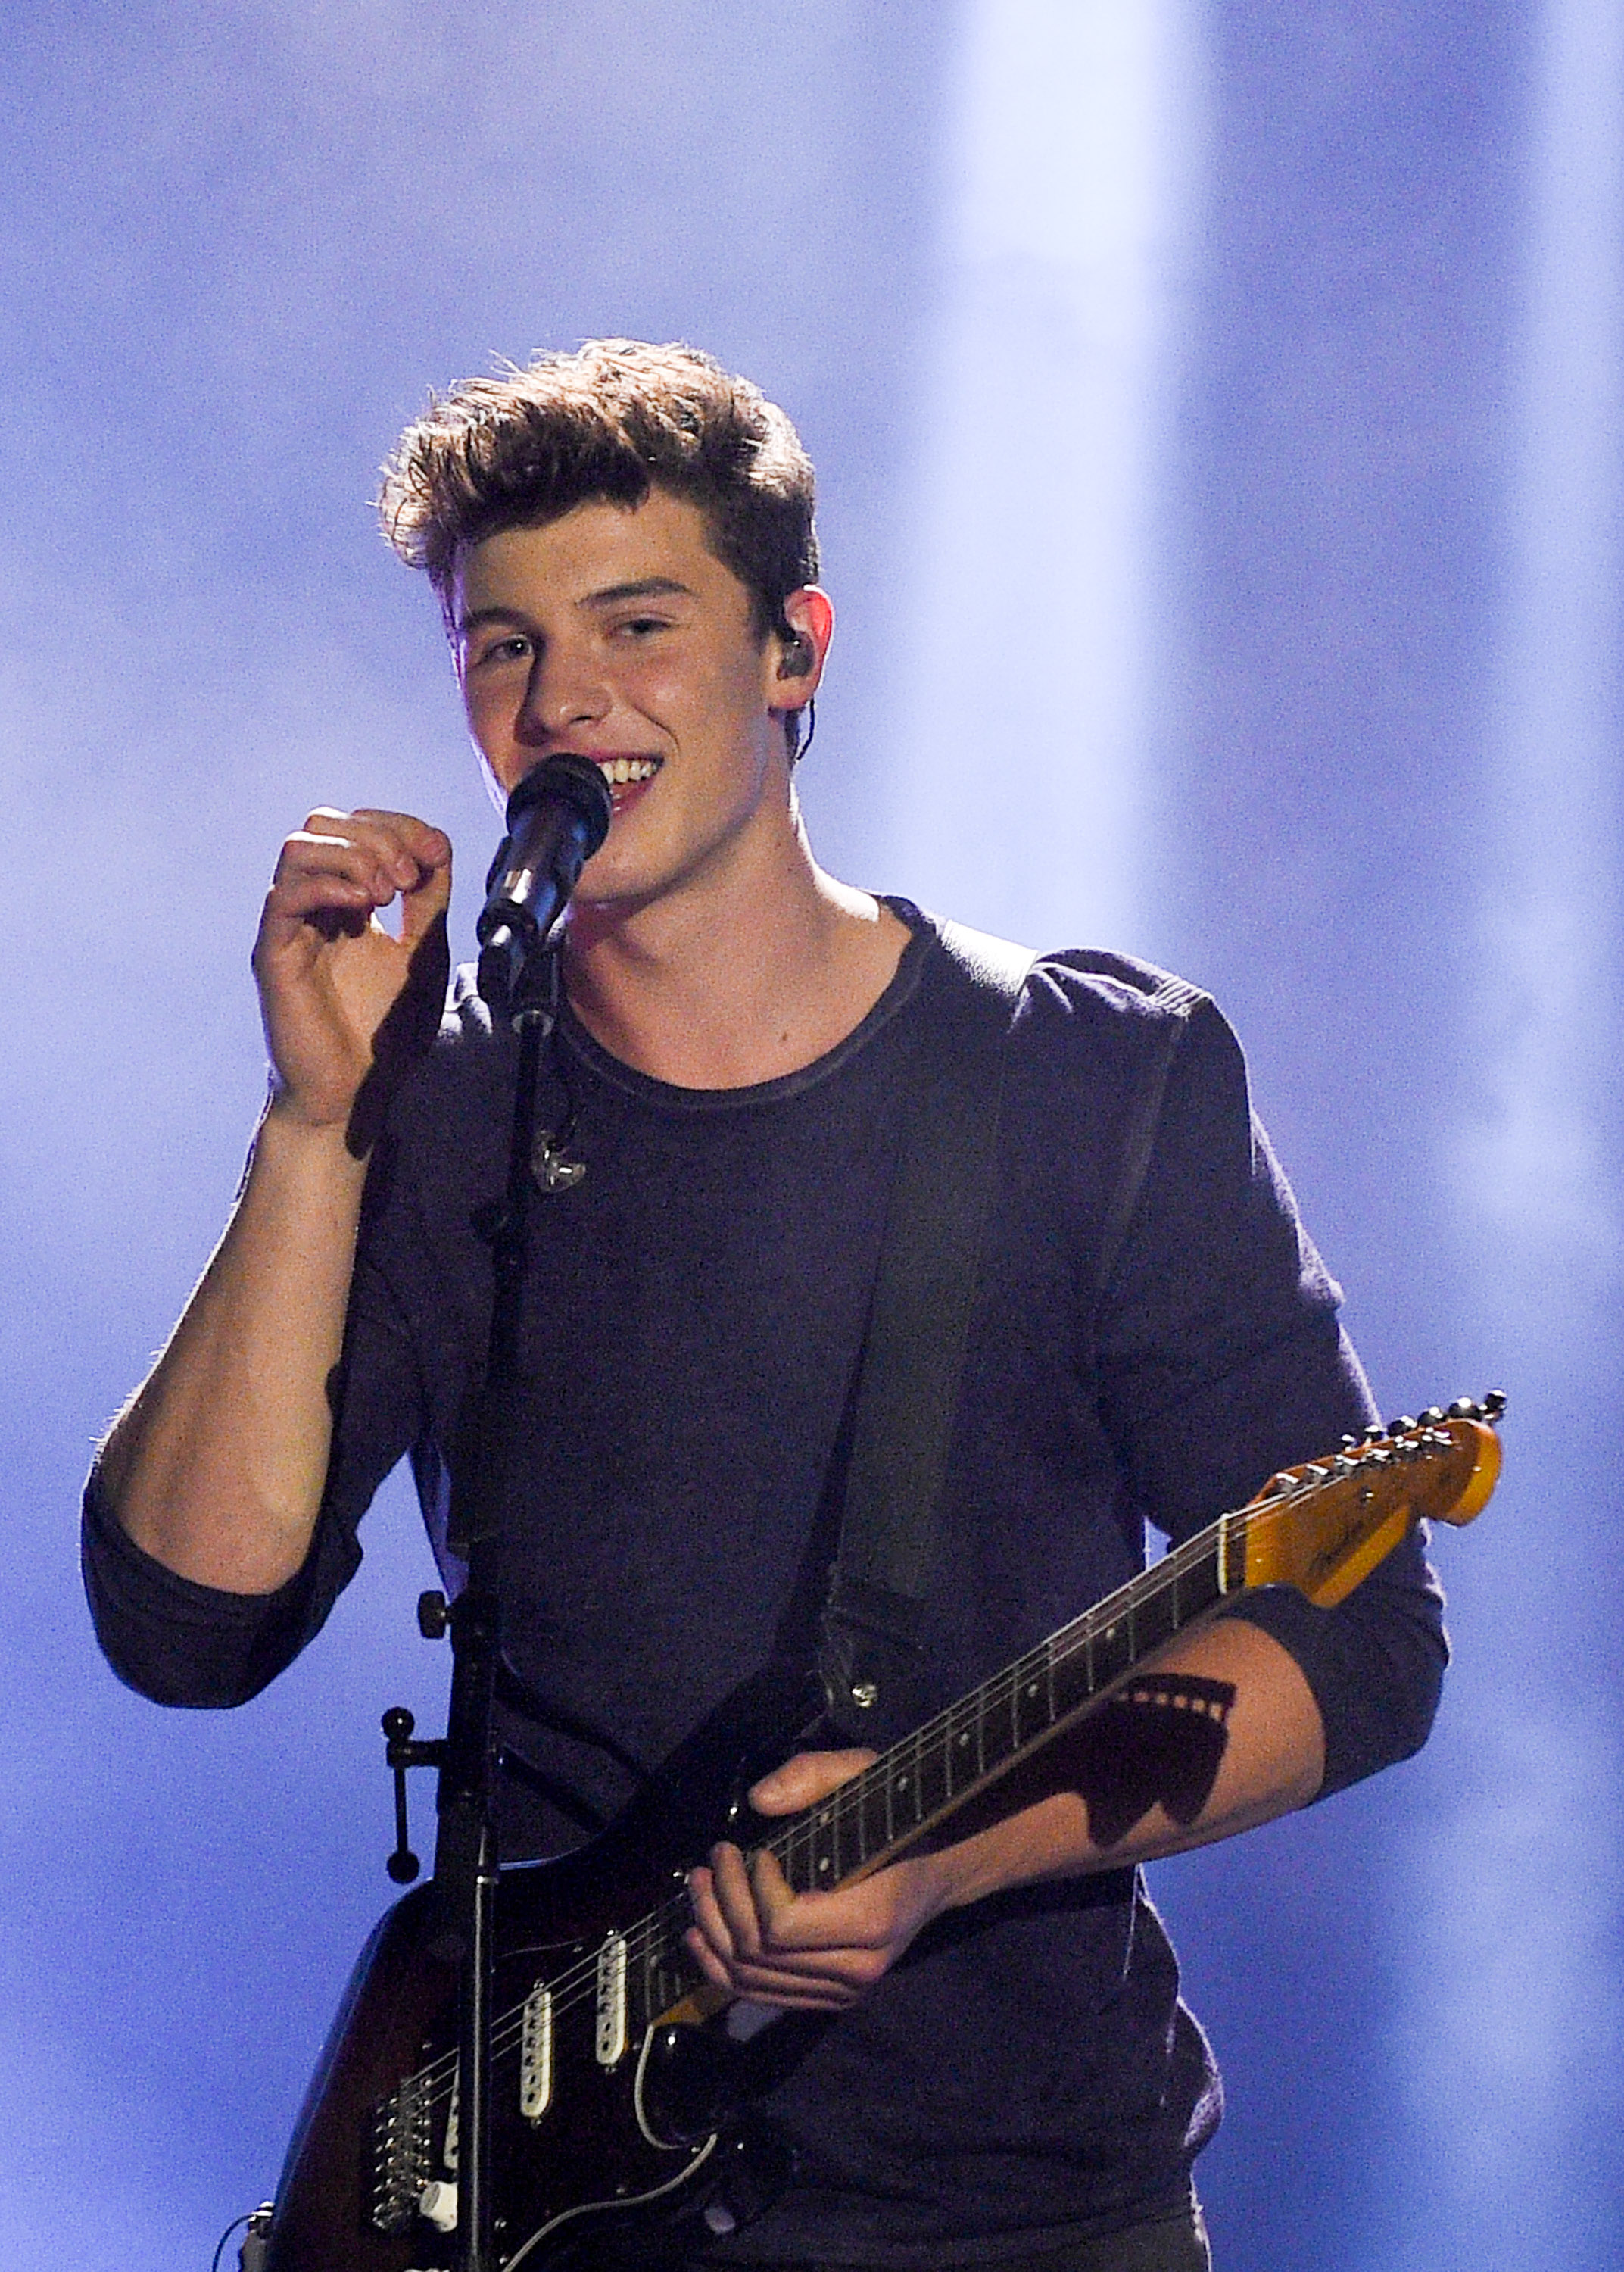 Shawn Mendes at 2016 MuchMusic Video Awards - Show